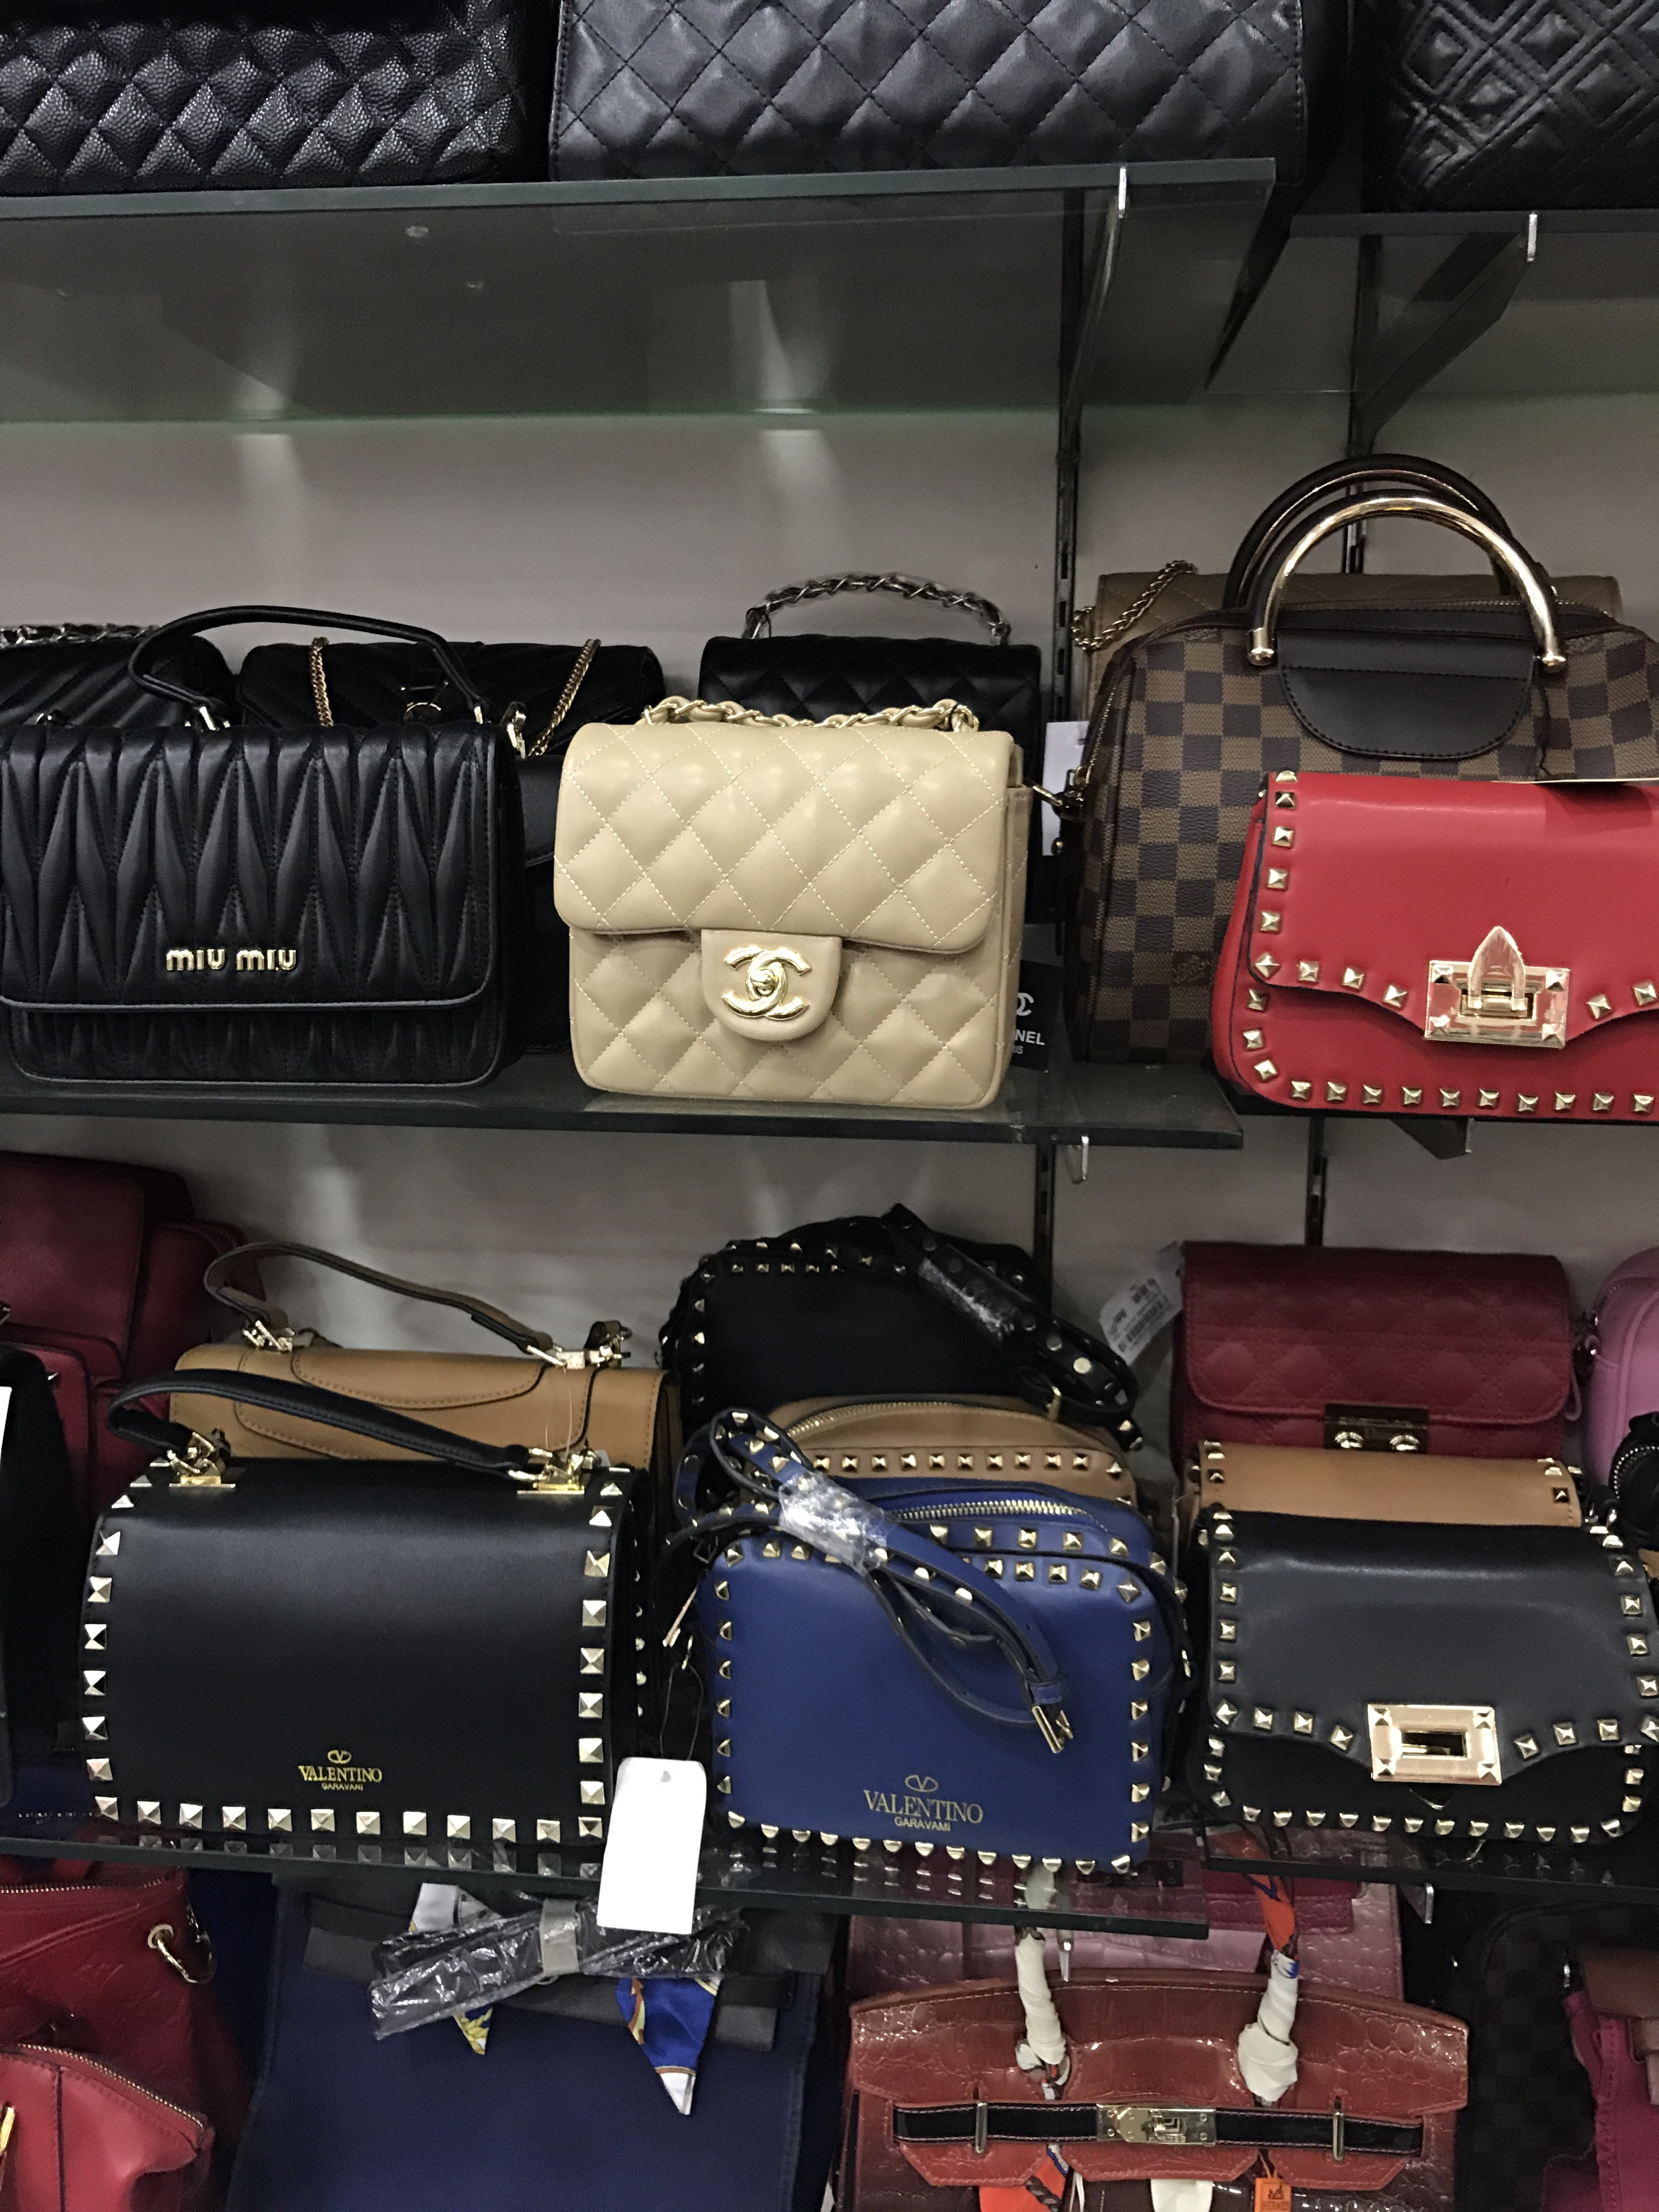 9808a86bc The Truth About Counterfeit Luxury Handbags - Becca Risa Luna - Medium